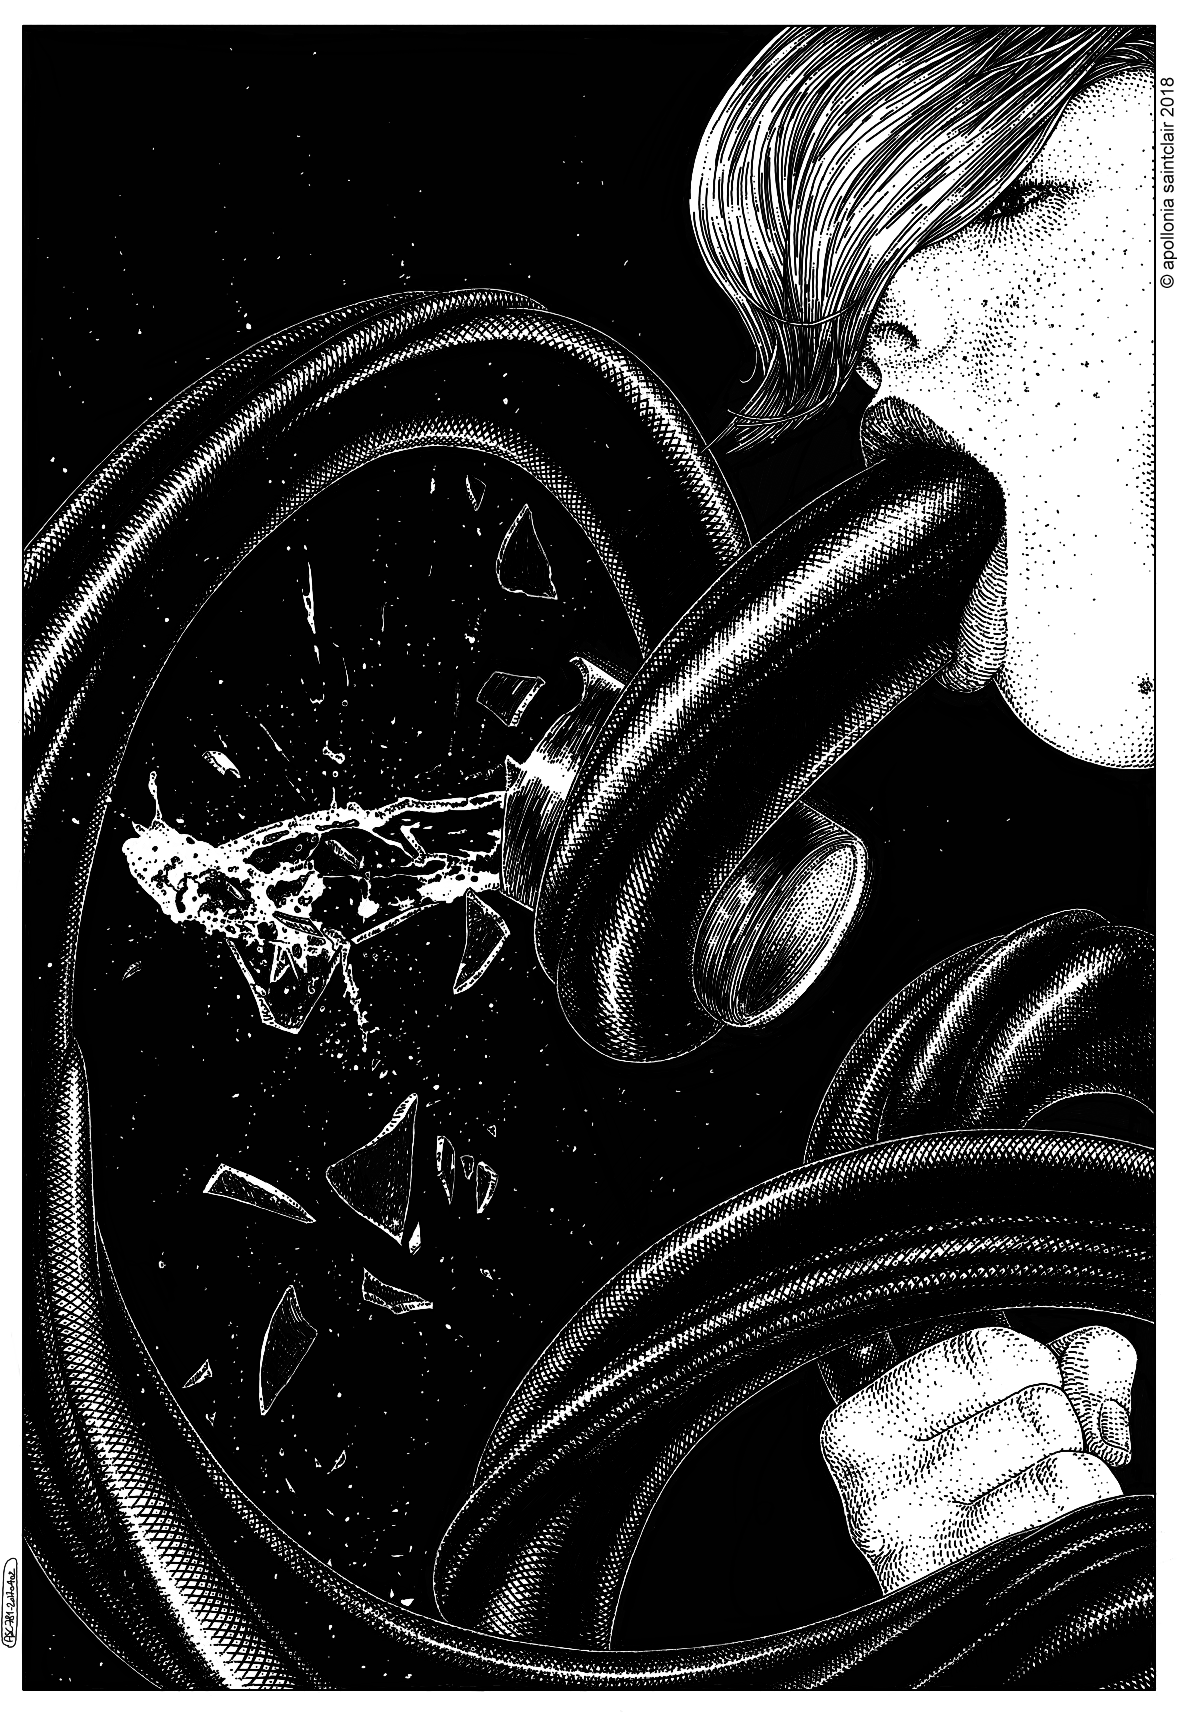 Apollonia Saintclair 781 - 20180402 Le dégoulottage (I can clench you tighter than a fist)